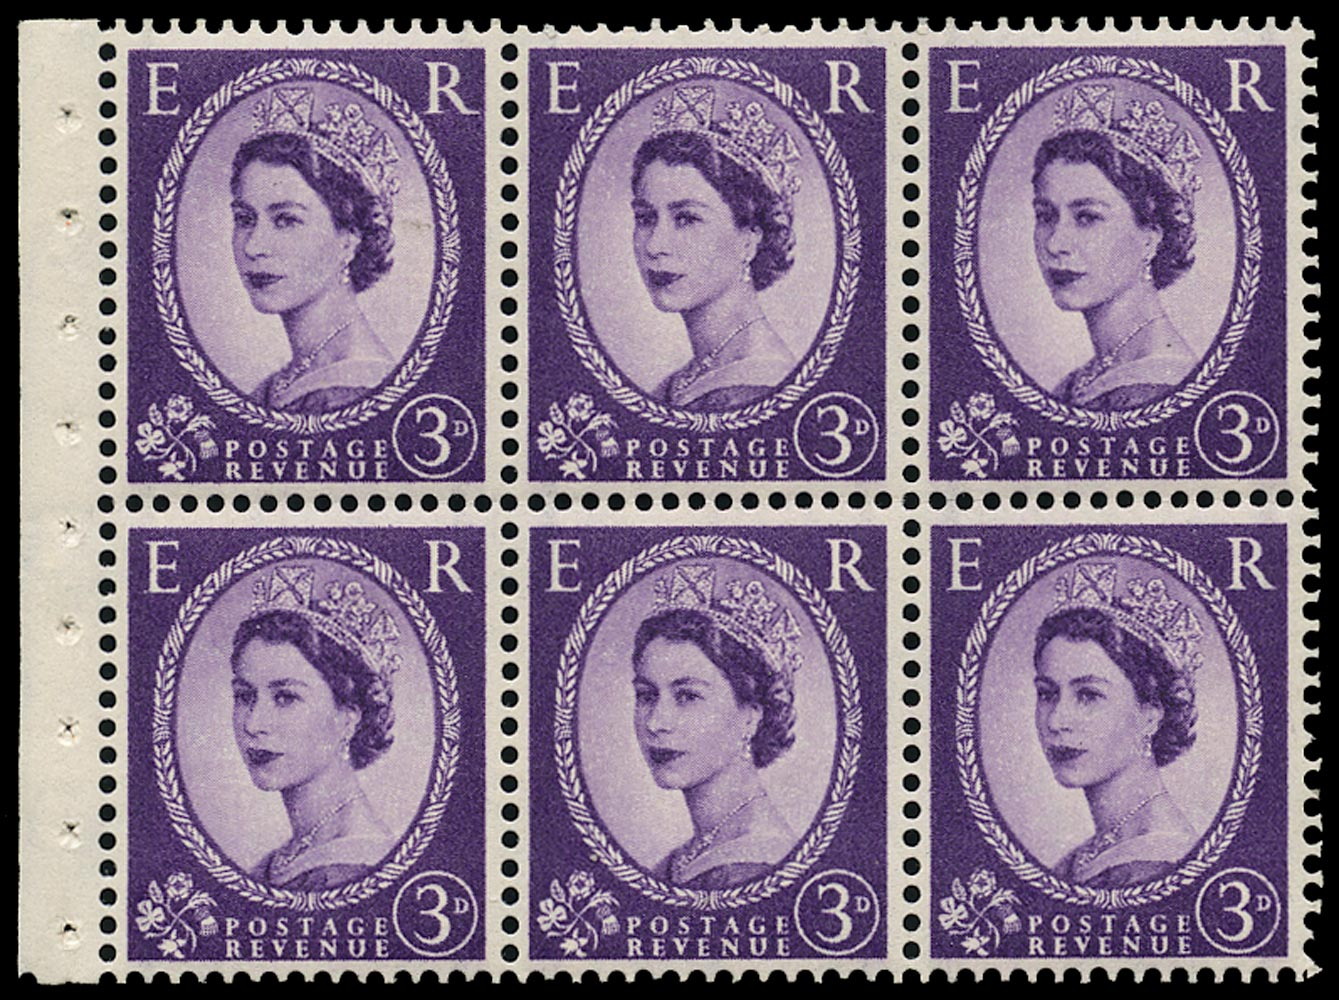 GB 1958  SG592l Booklet pane - Long tailed 'R' variety